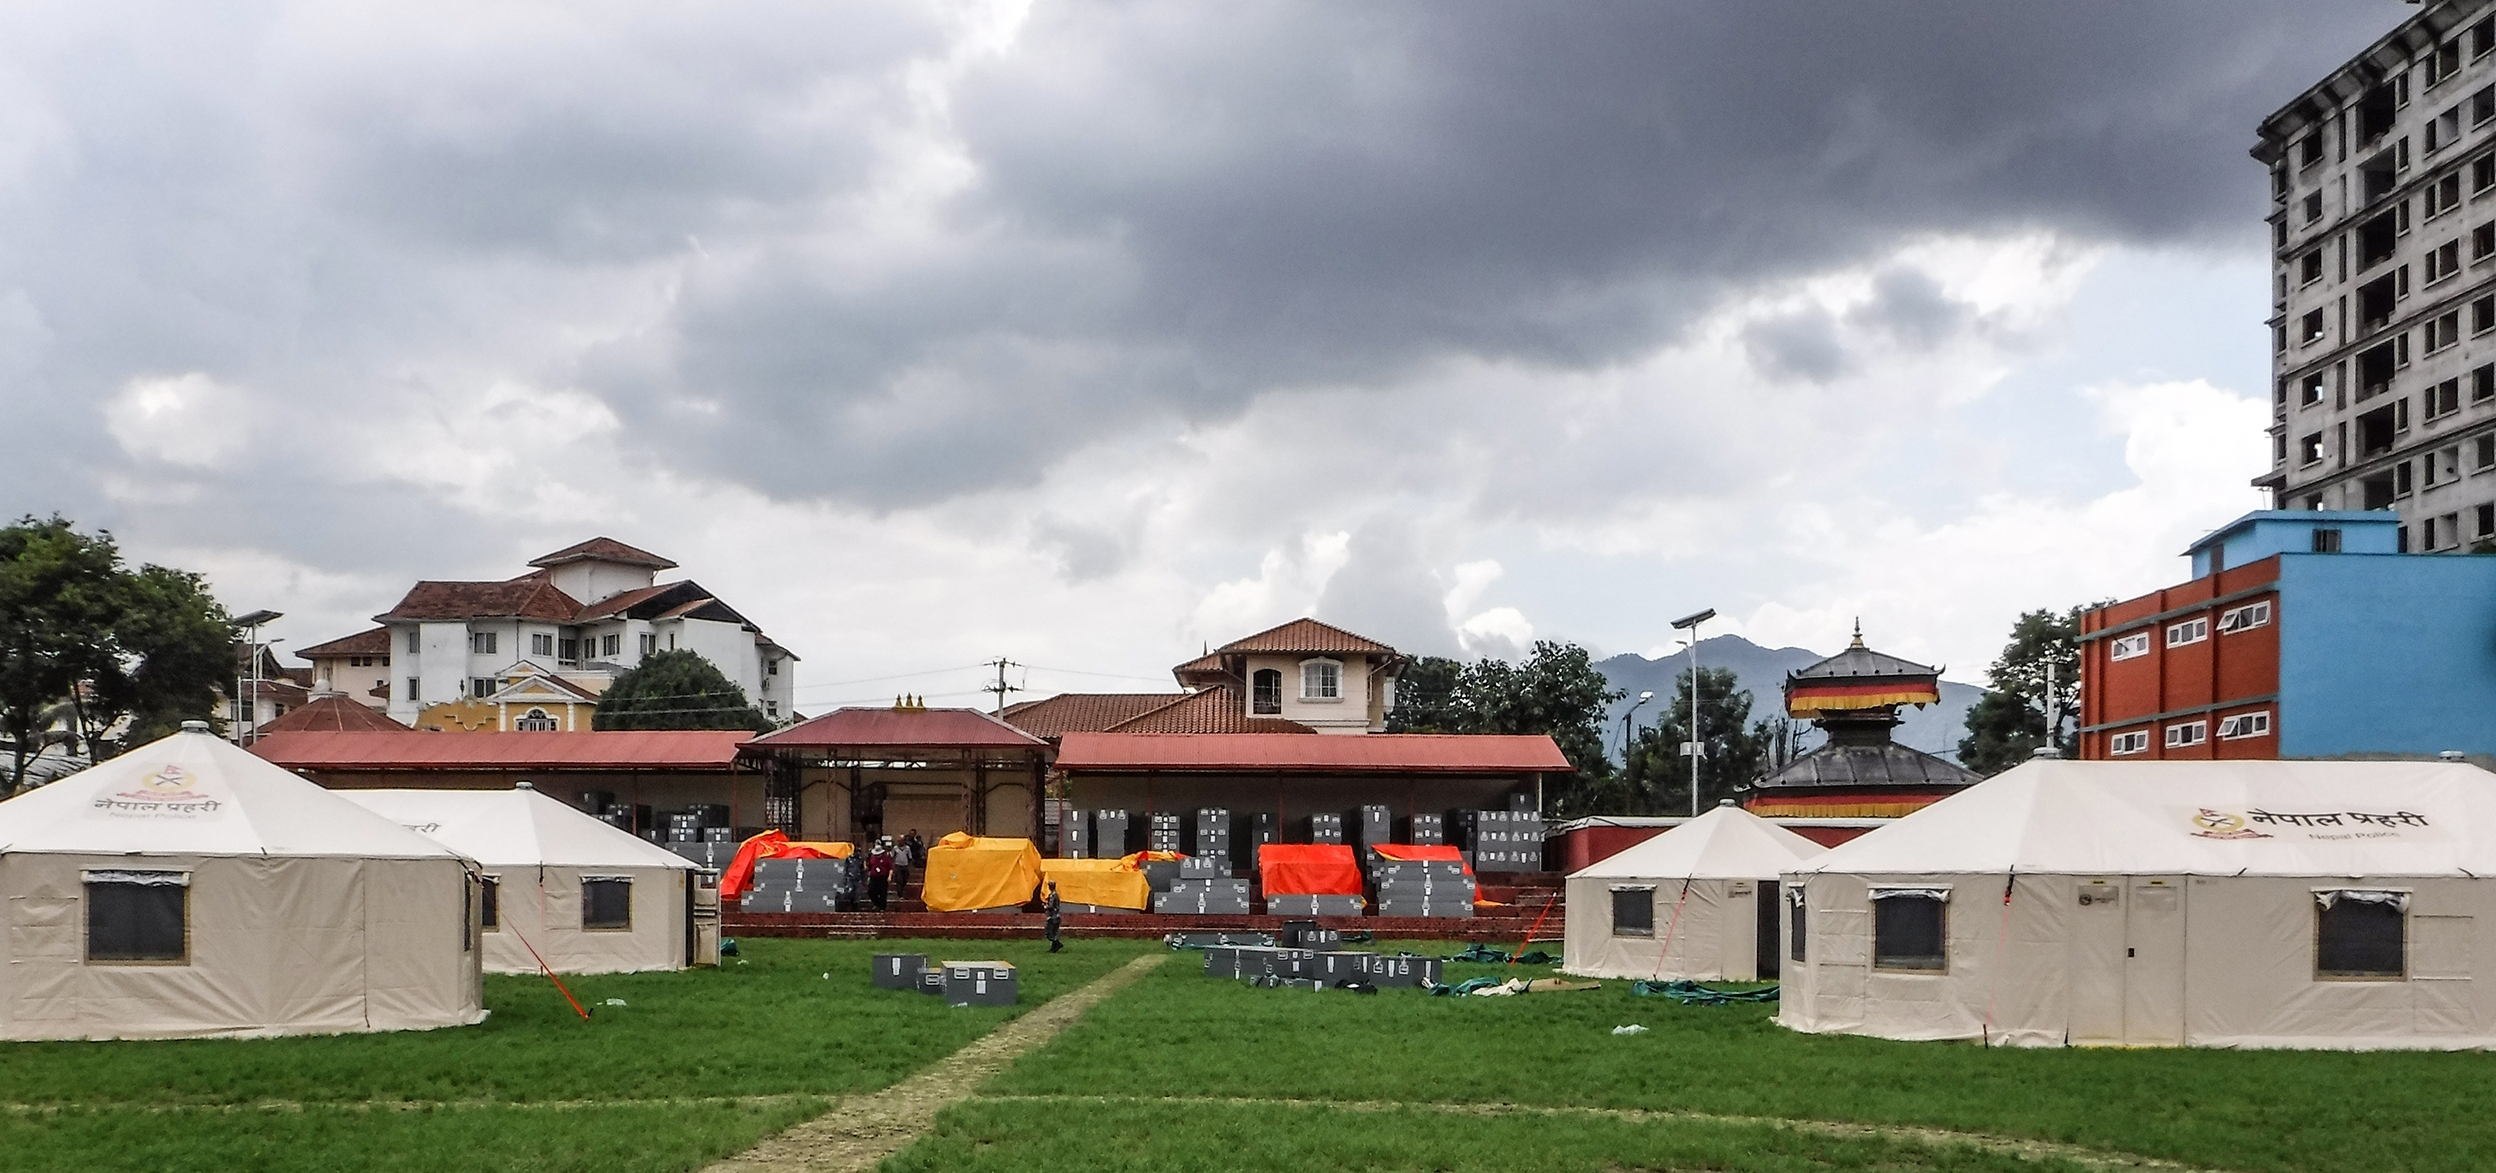 Western Shelters on the ground in Nepal.